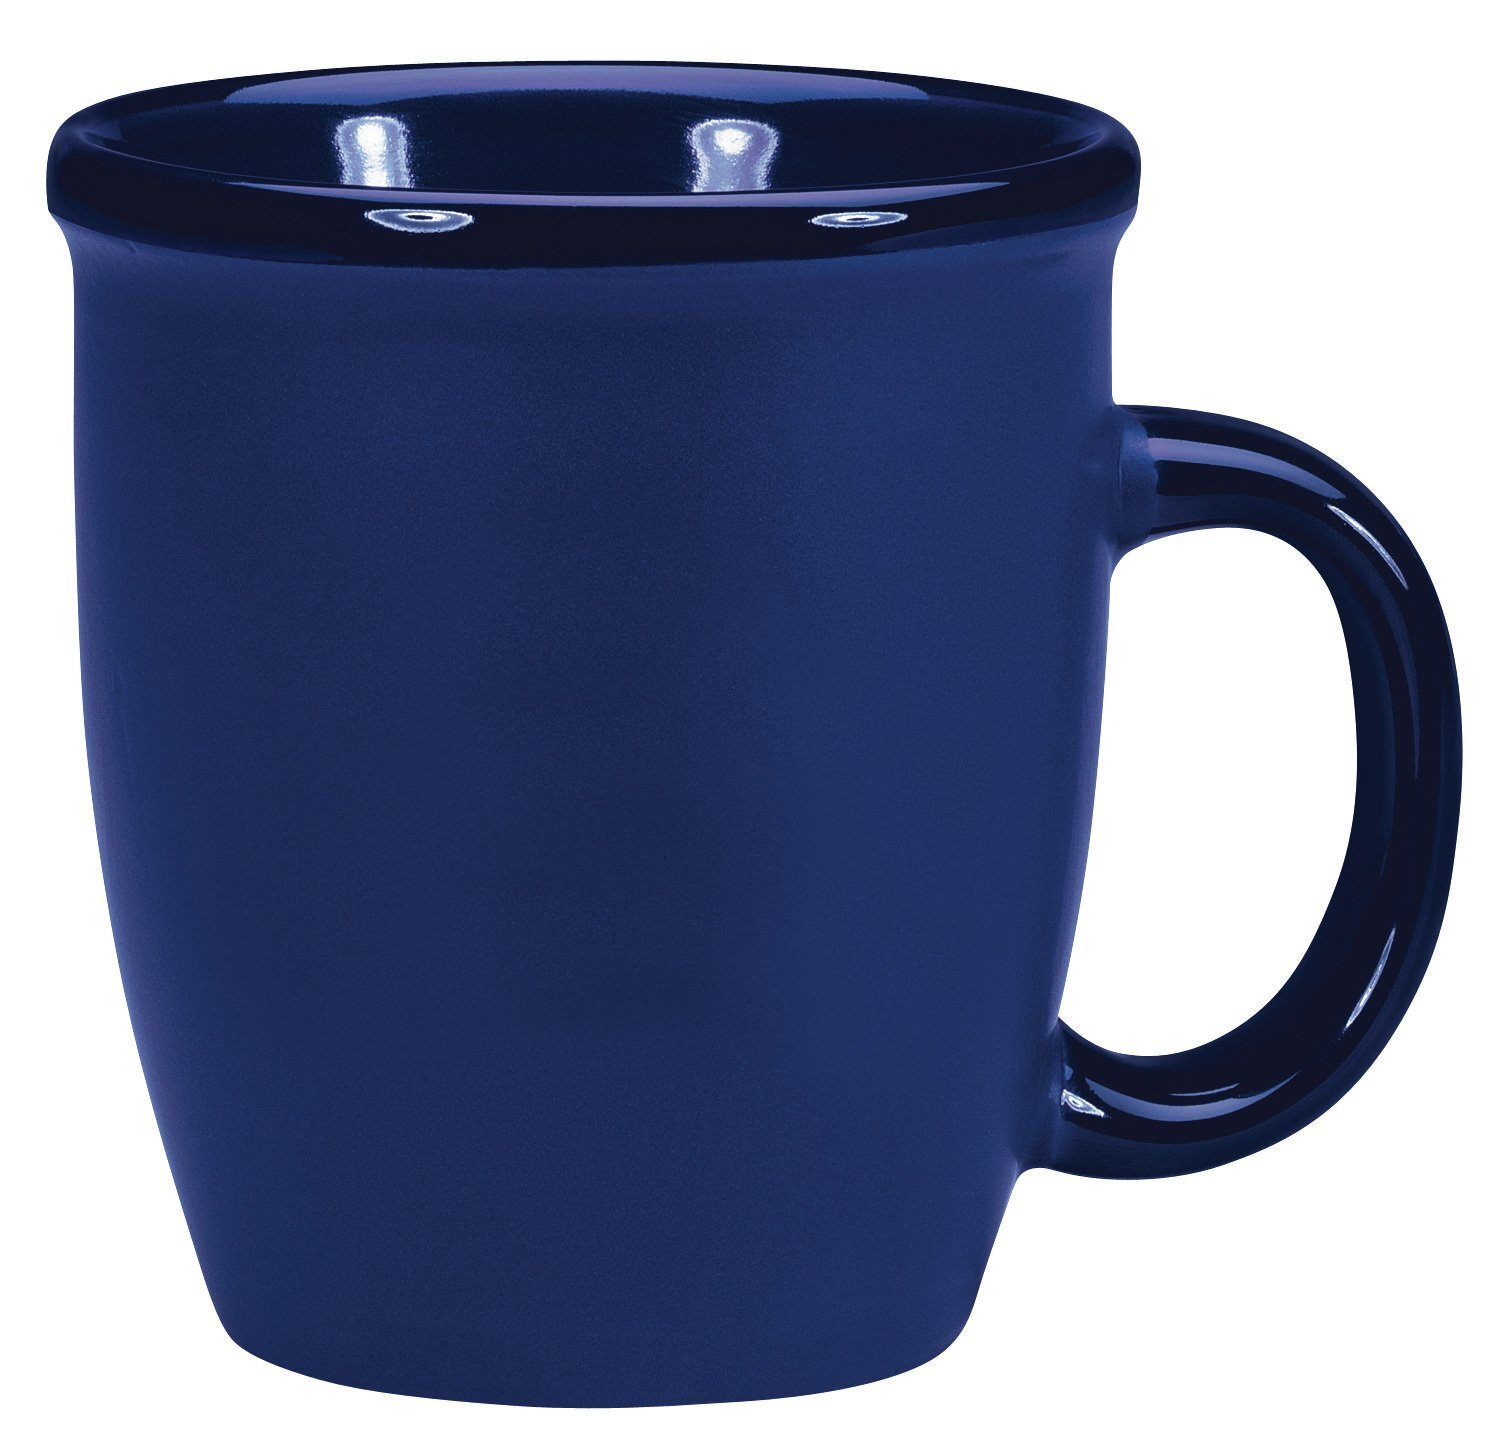 Duo Texture Ceramic Mug, 11oz